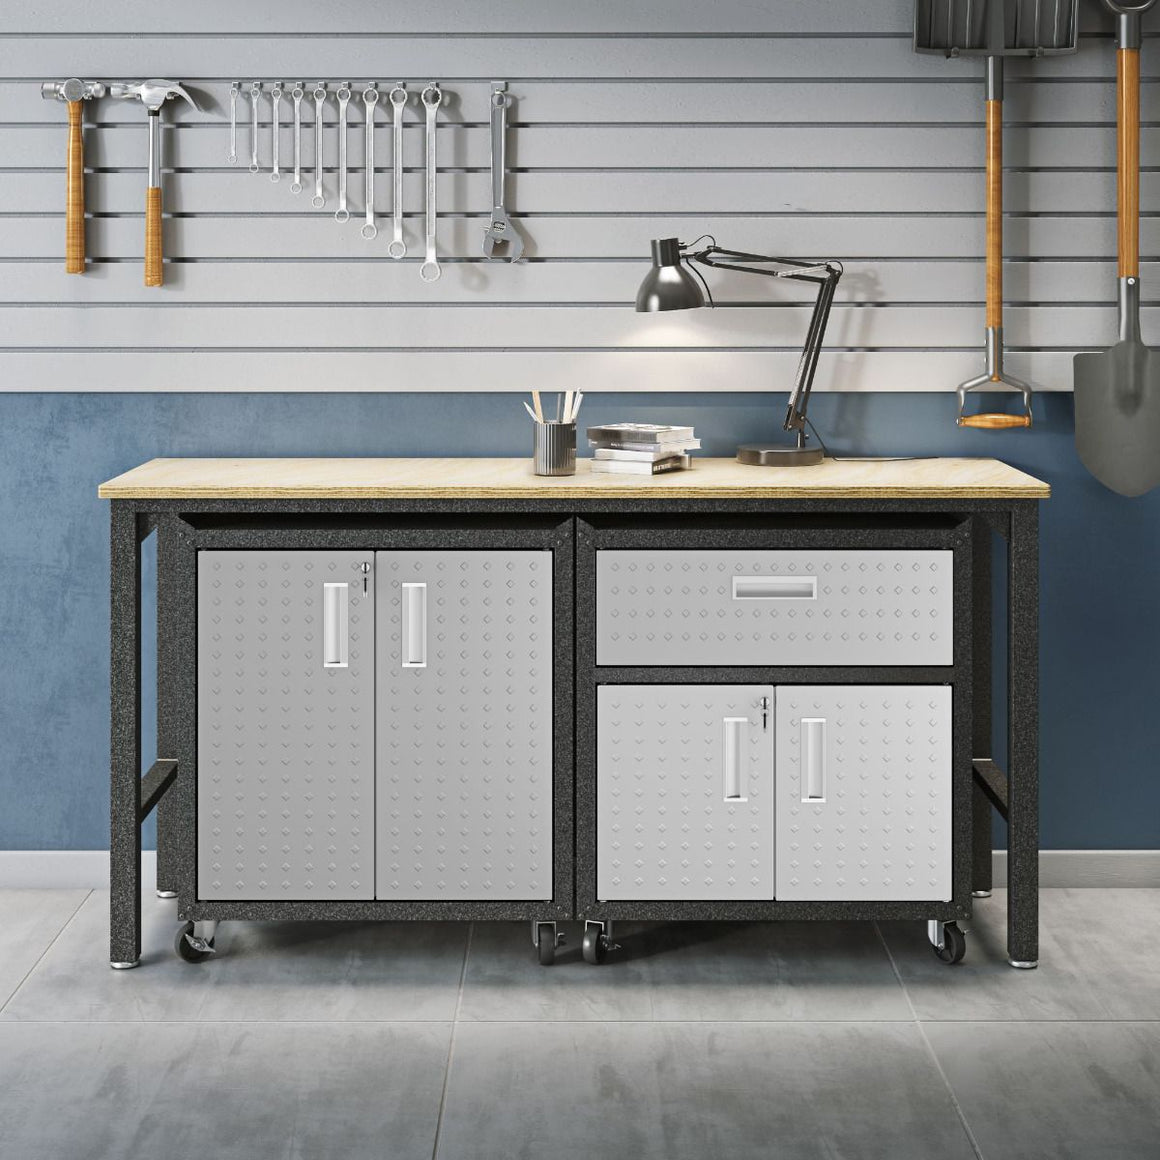 Fortress 3-Piece Mobile Space-Saving Garage Cabinets & Work Table - taylor ray decor